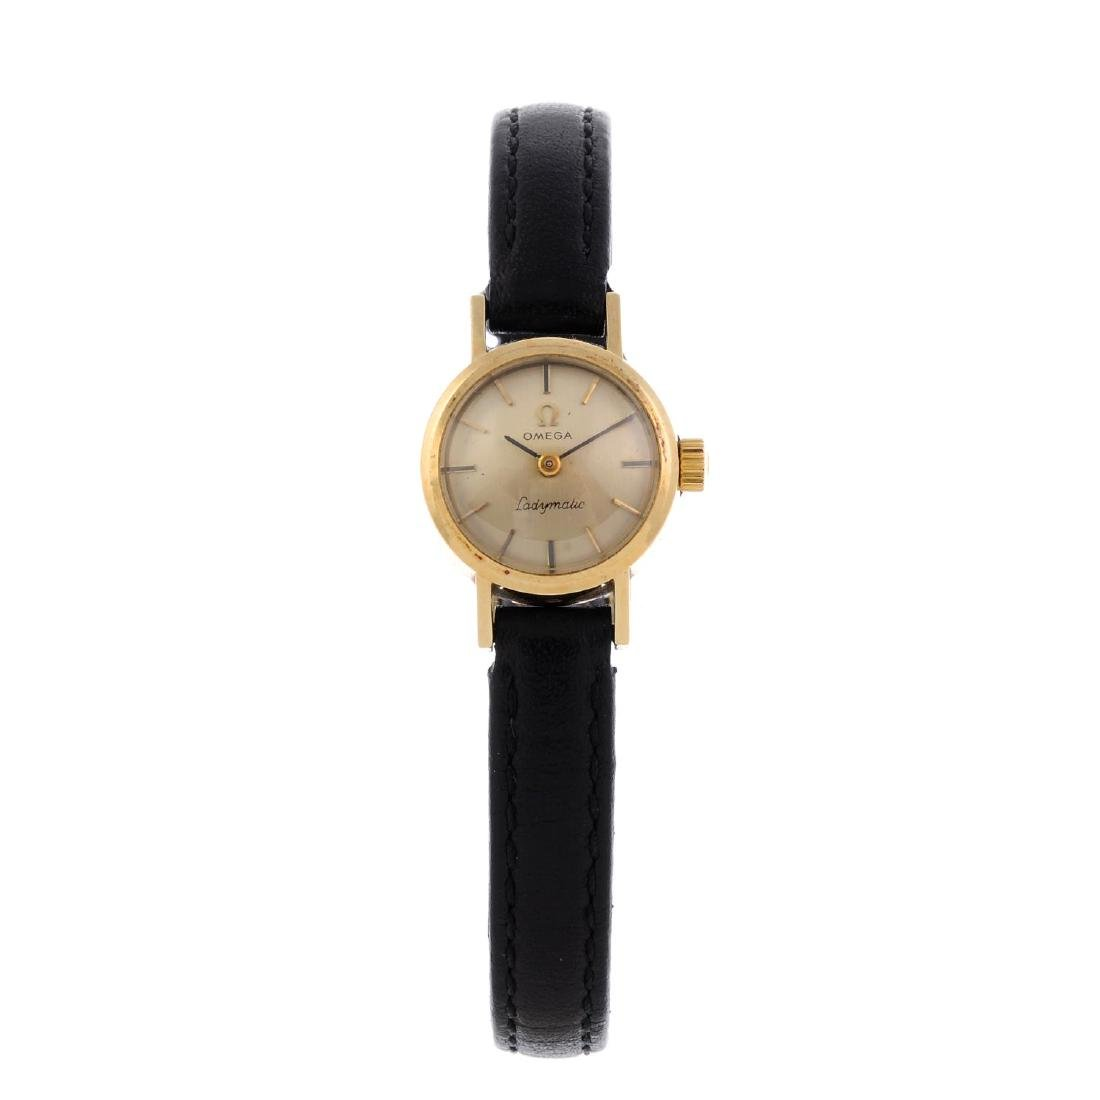 OMEGA - a lady's Ladymatic wrist watch. Yellow metal